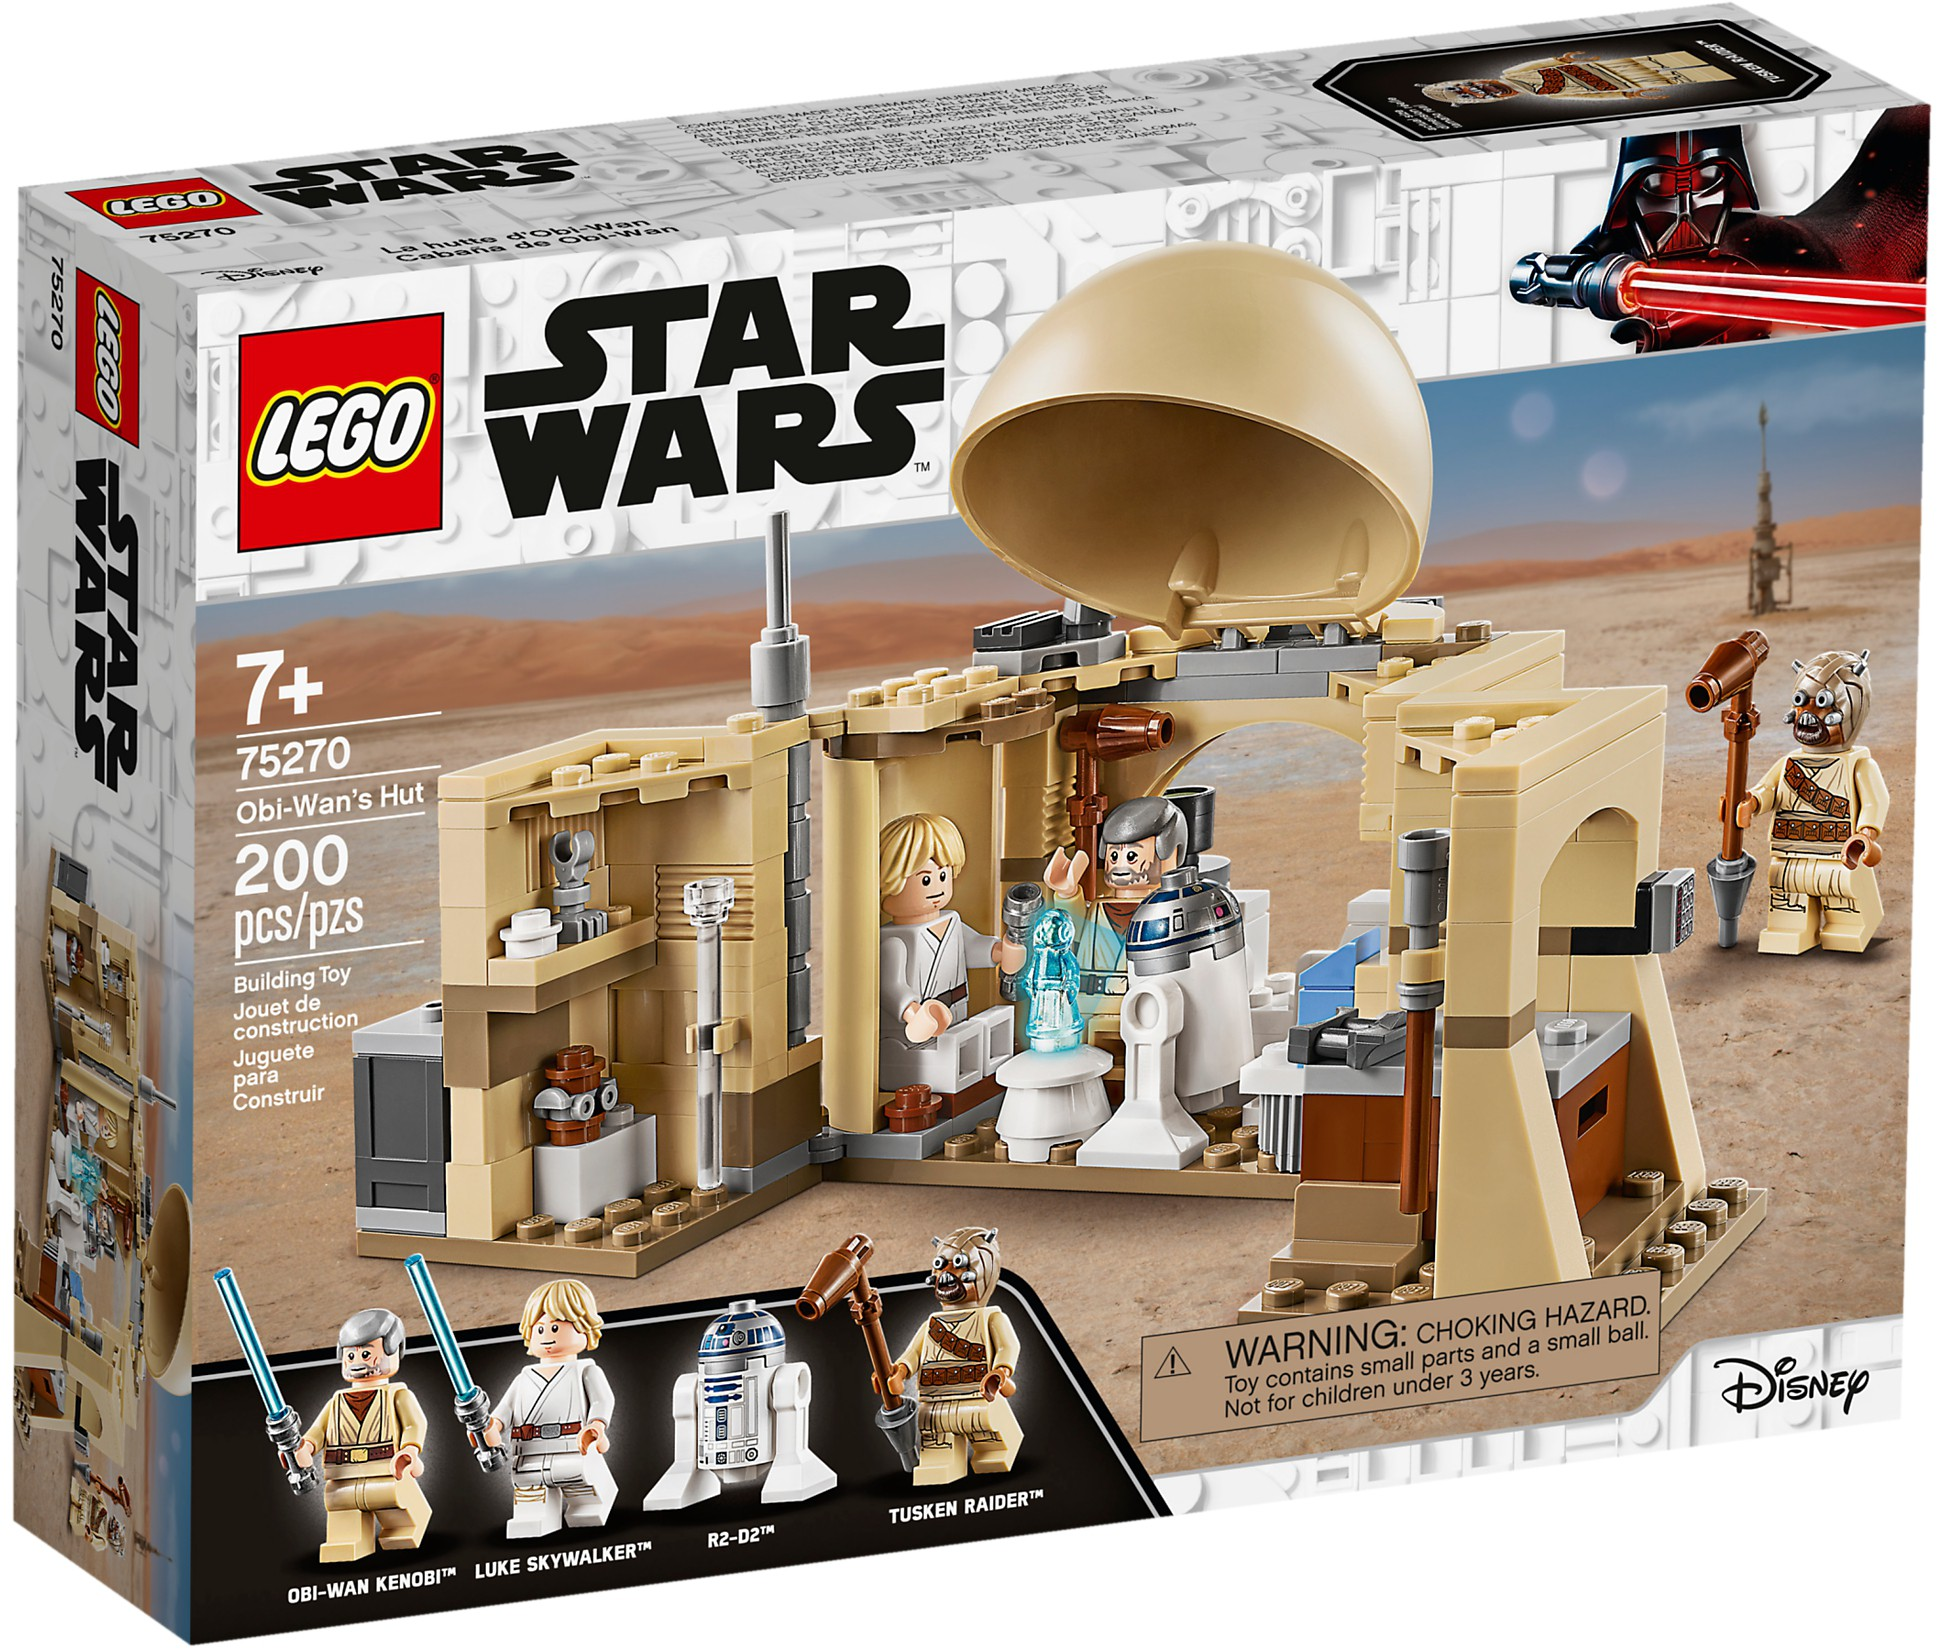 Star Wars ™ 75270 Obi-Wan's Hut